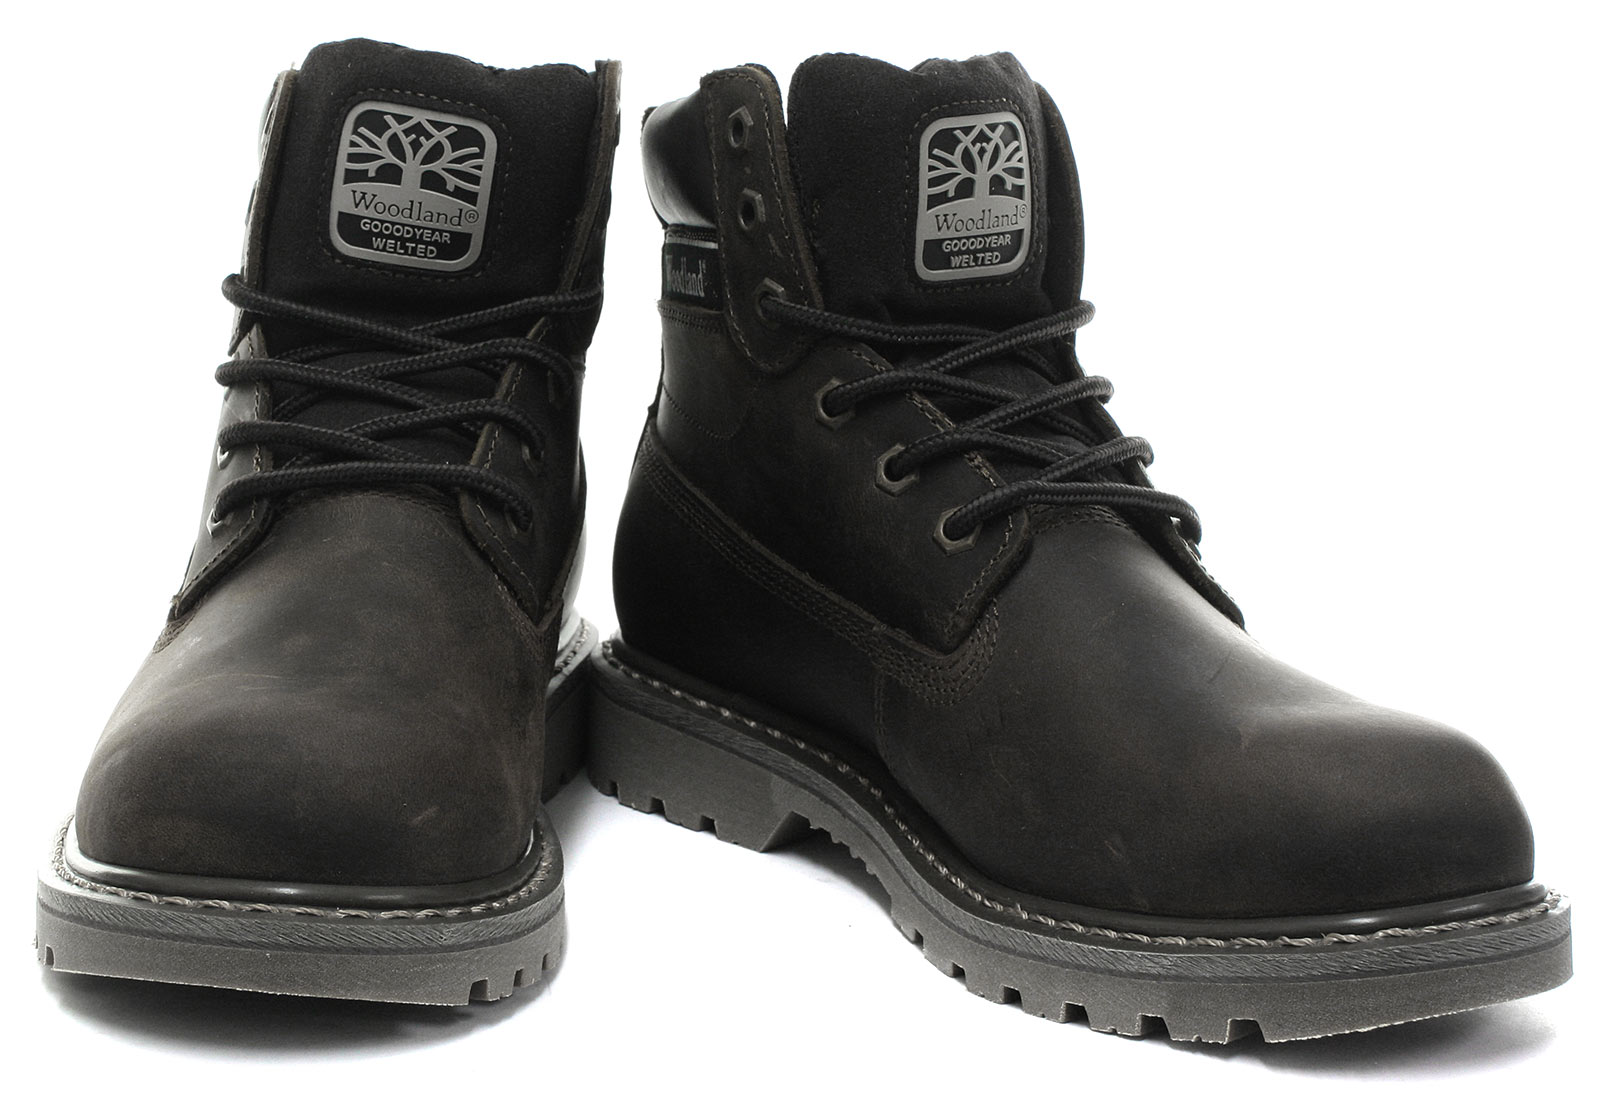 New-Woodland-M905-Mens-6-Eye-Utility-Boots-ALL-SIZES-AND-COLOURS miniature 6